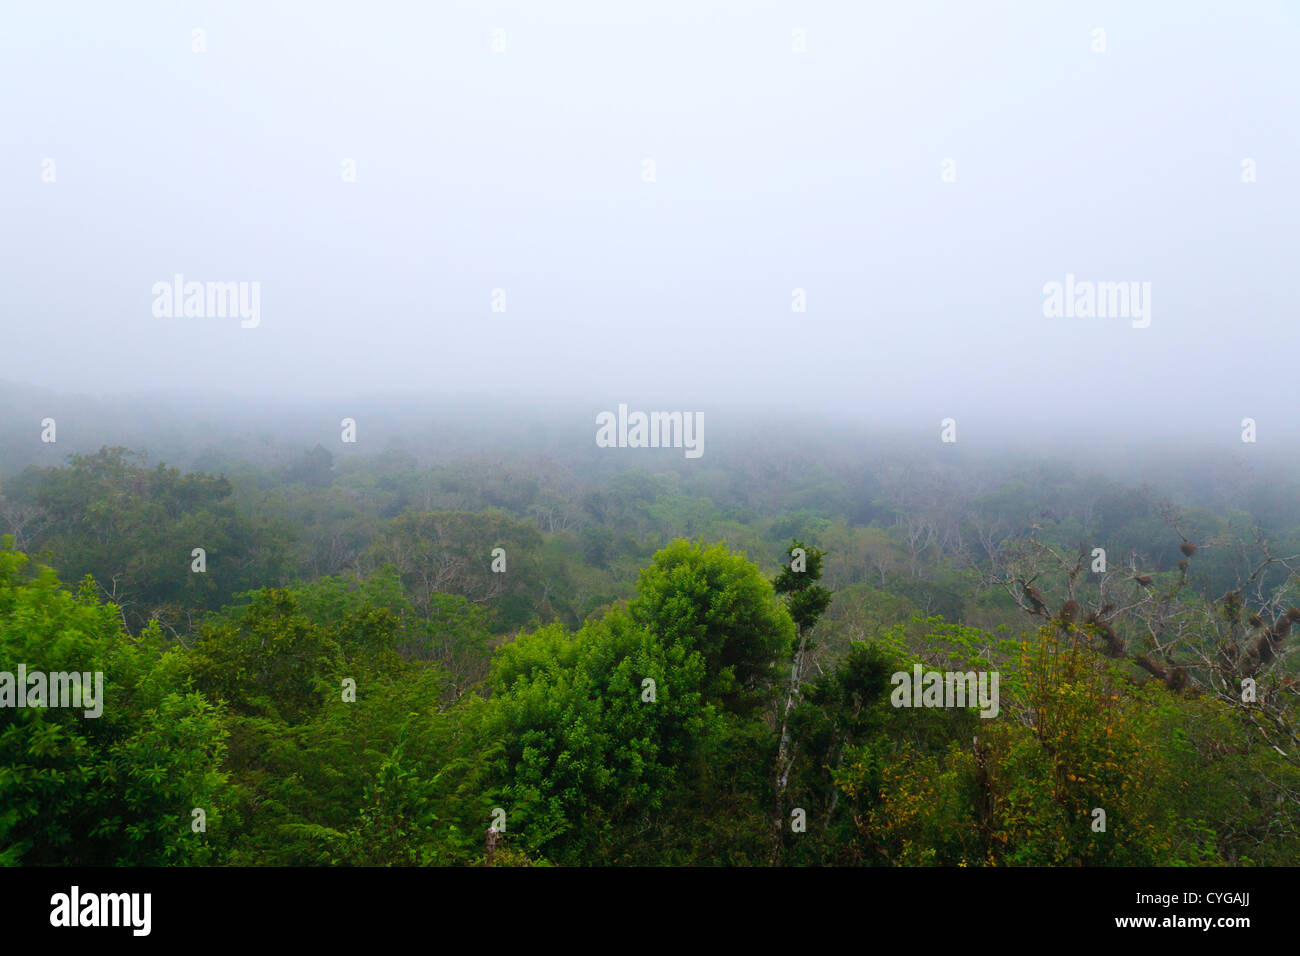 Aerial view of Tikal National Park at dawn in Guatemala - Stock Image